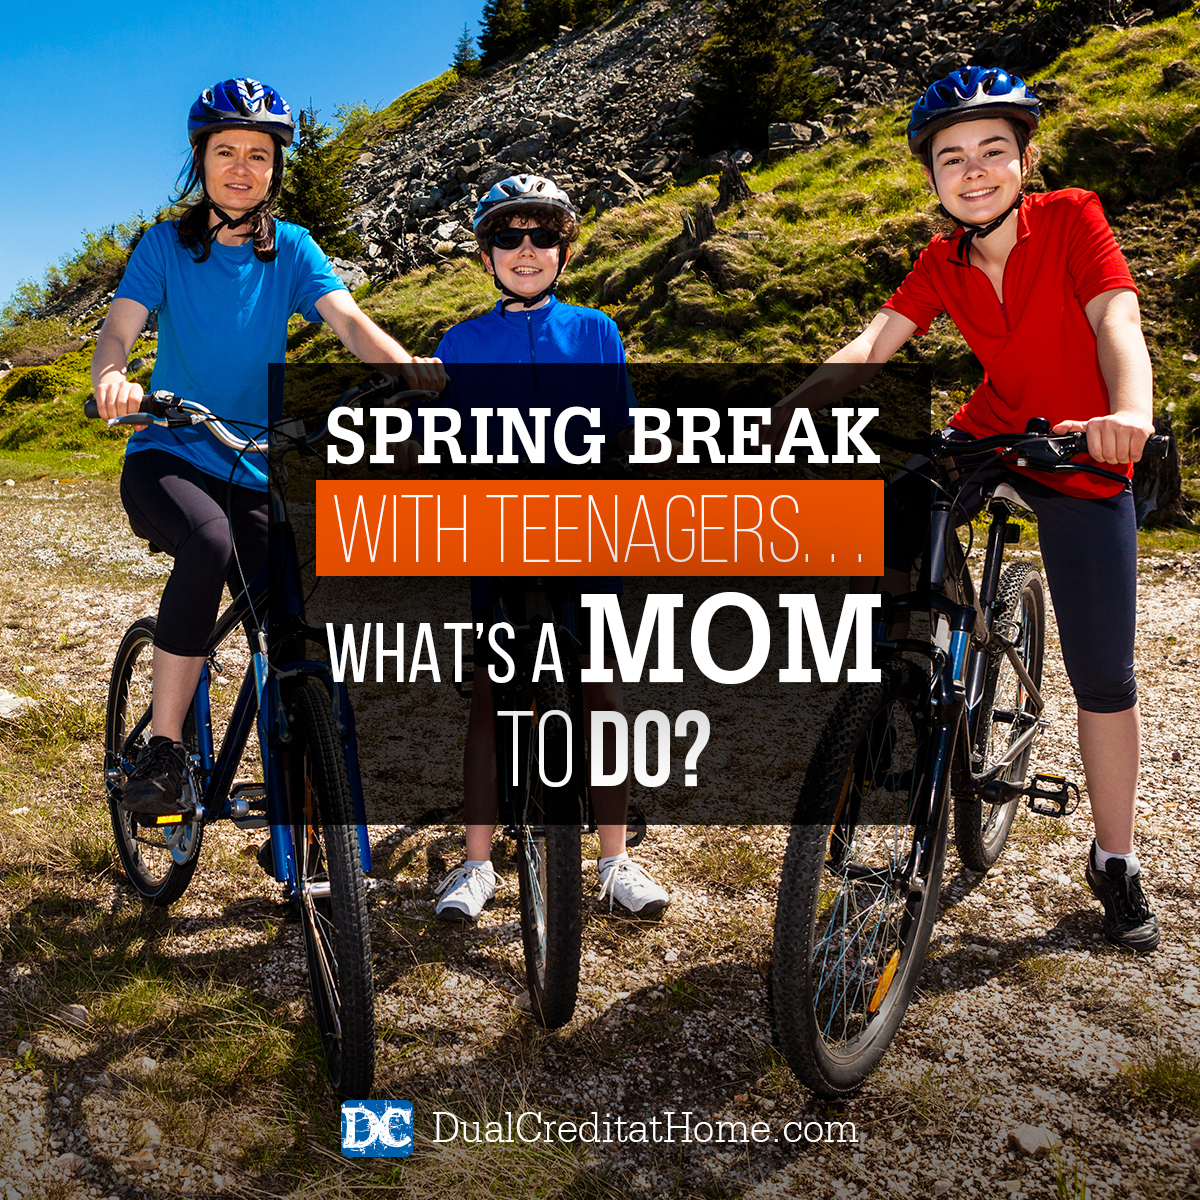 Spring Break With Teenagers....What's a Homeschool Mom To Do?